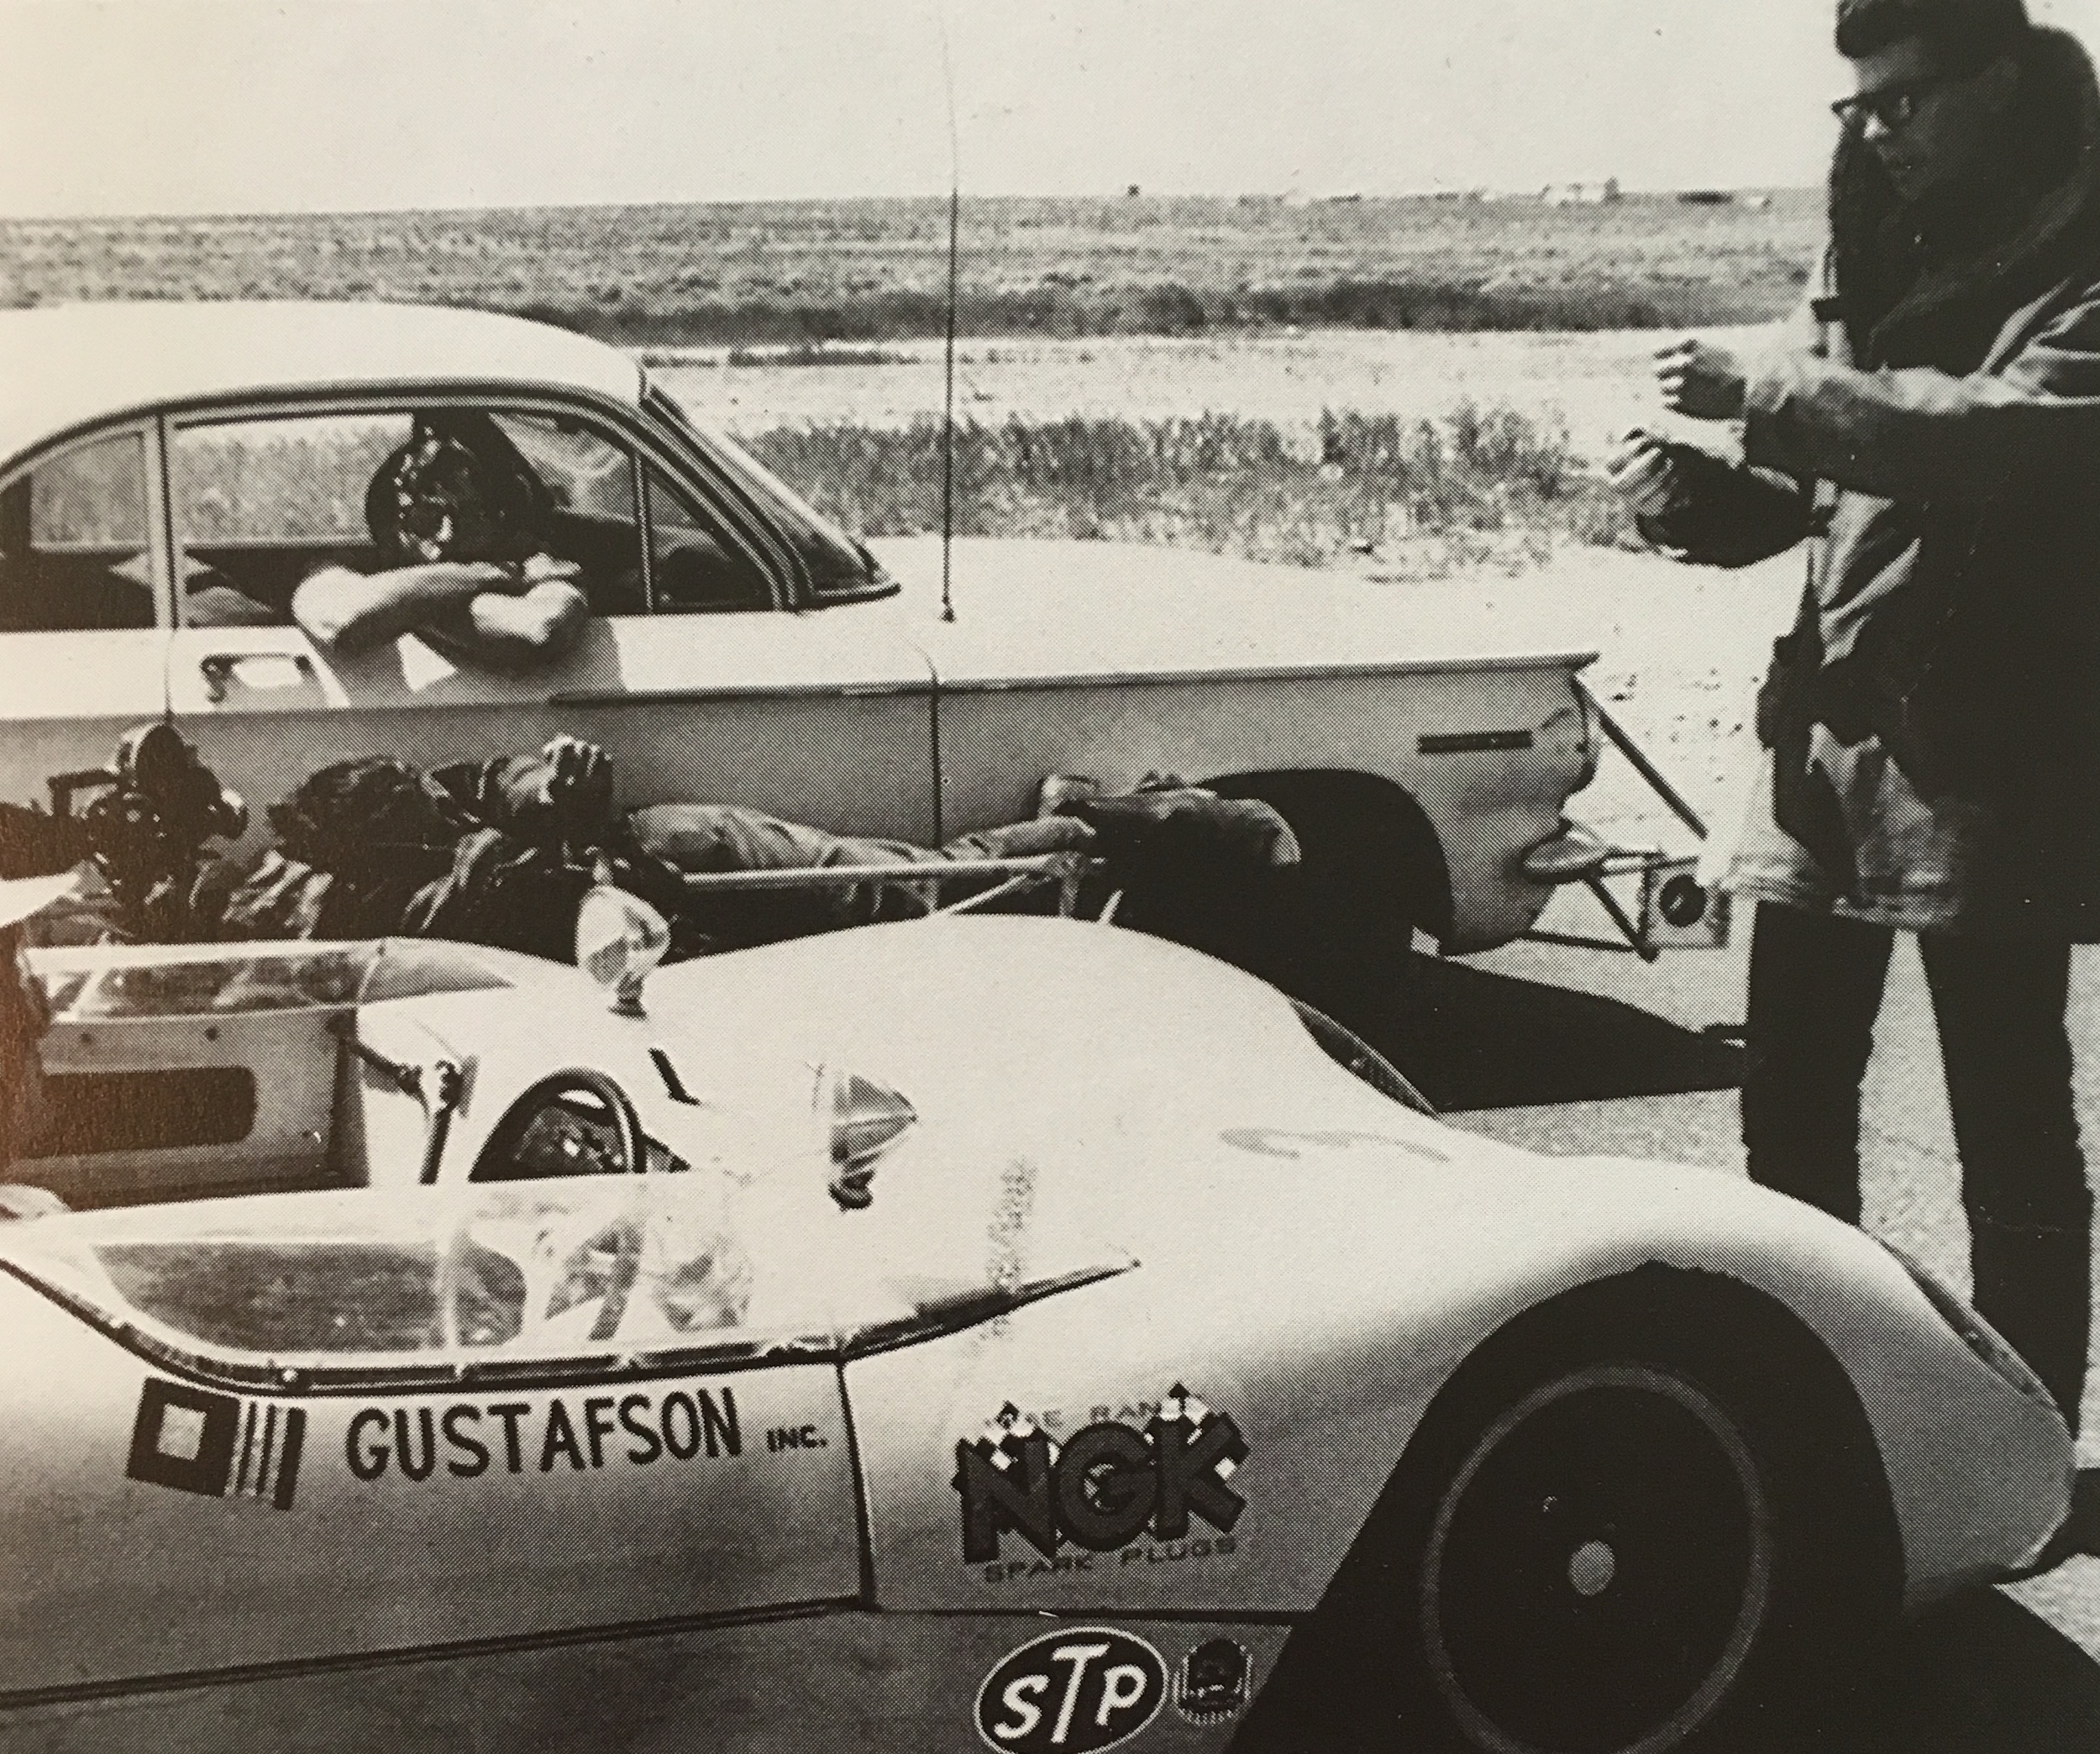 Lucas (circa 22 years old) on location at Willow Springs Raceway filming  1:42.08 . Notice camera operator Emmett Alston strapped to the side of the other car.